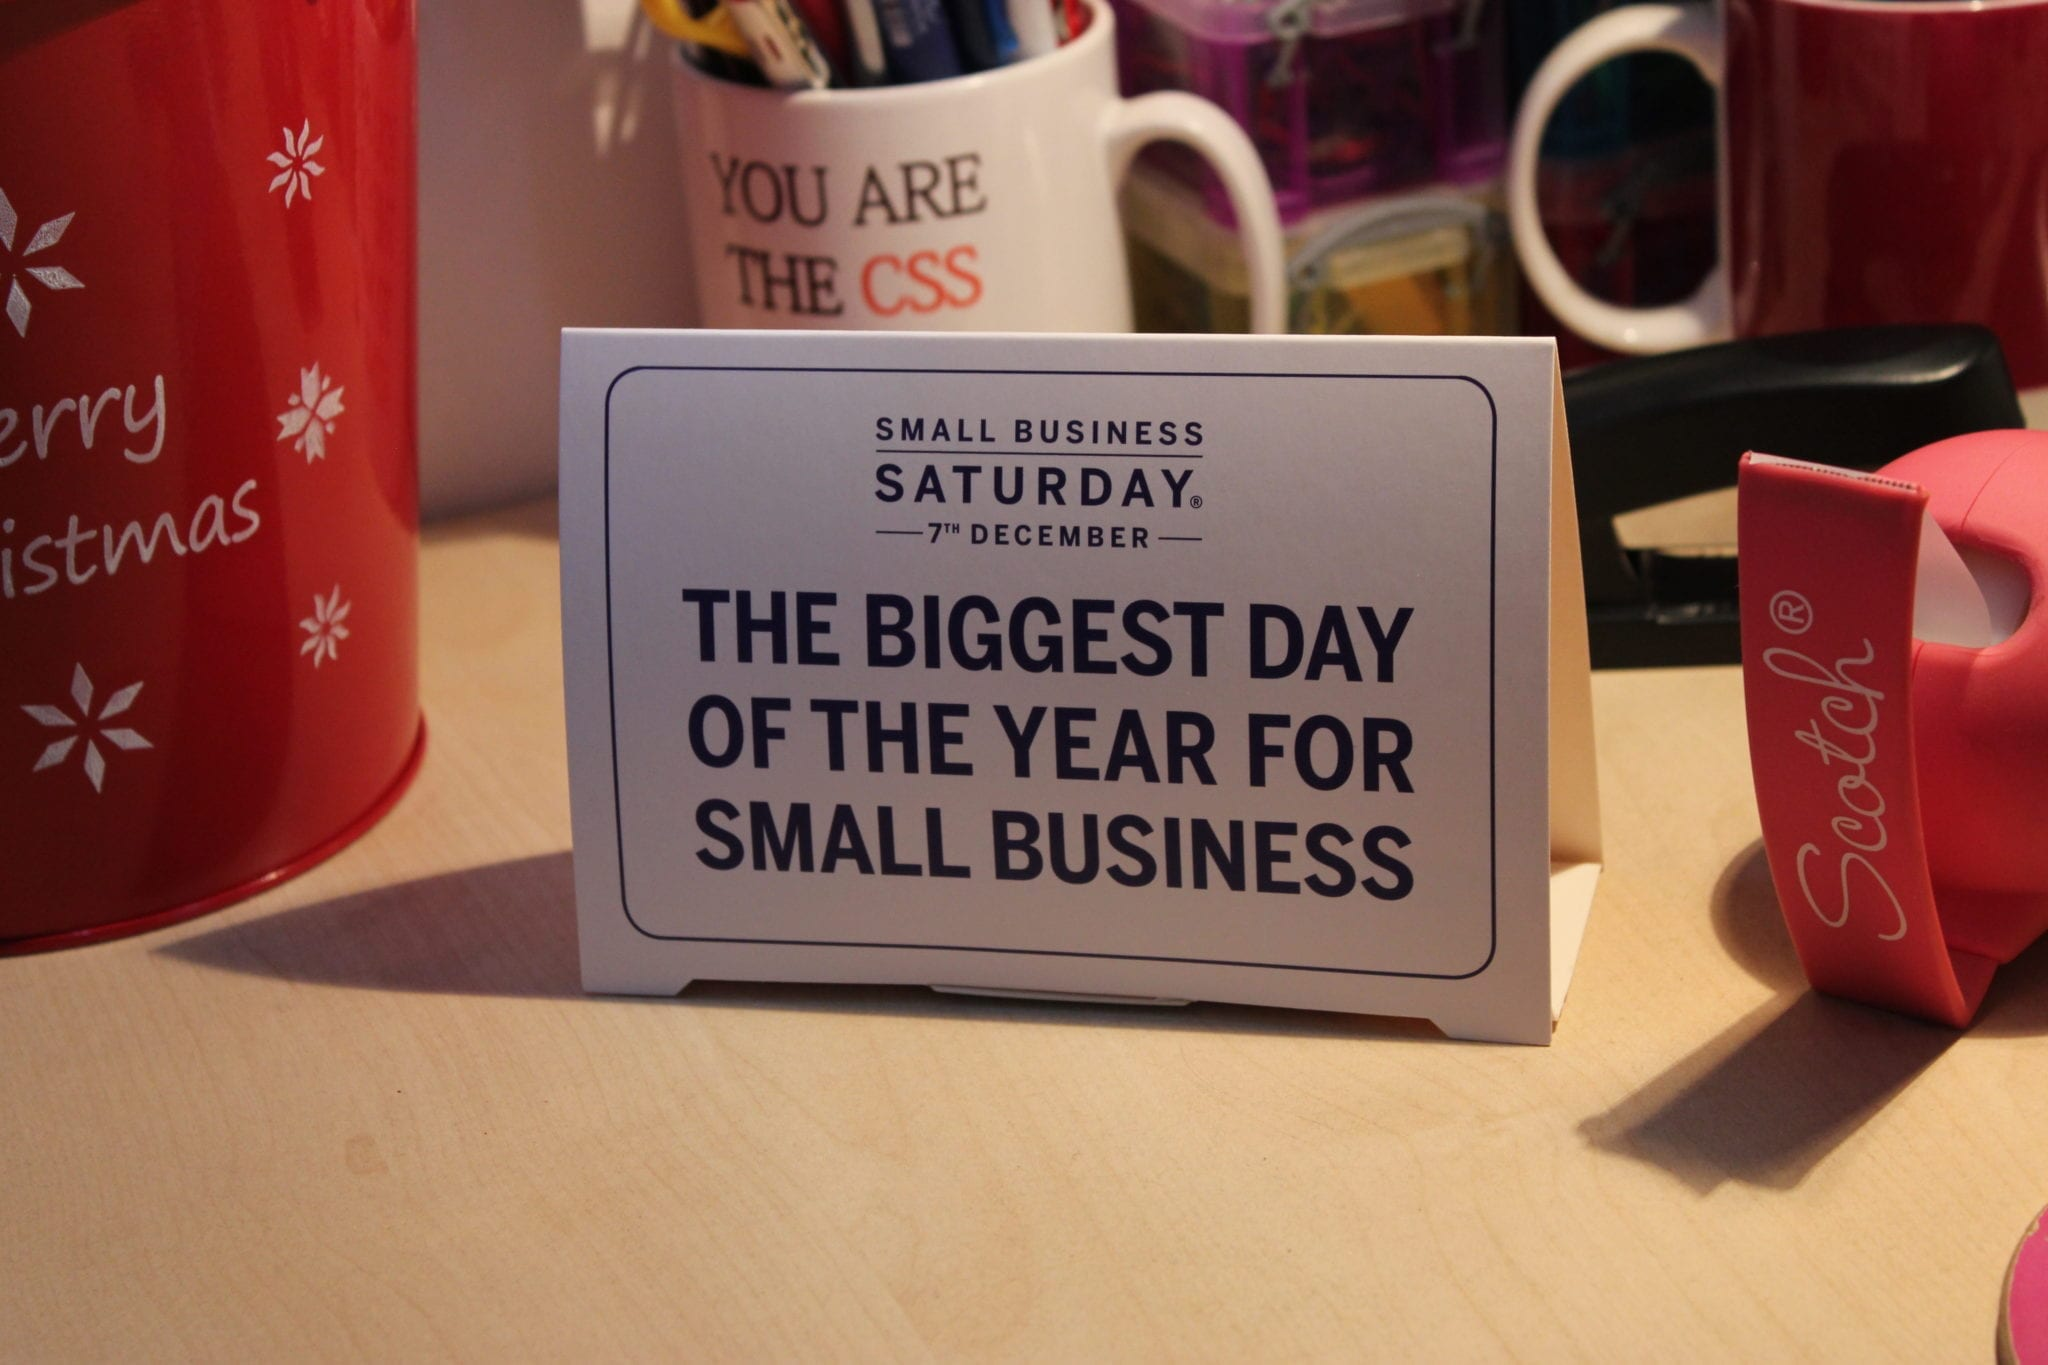 making-the-most-of-small-business-saturday-2013.jpg